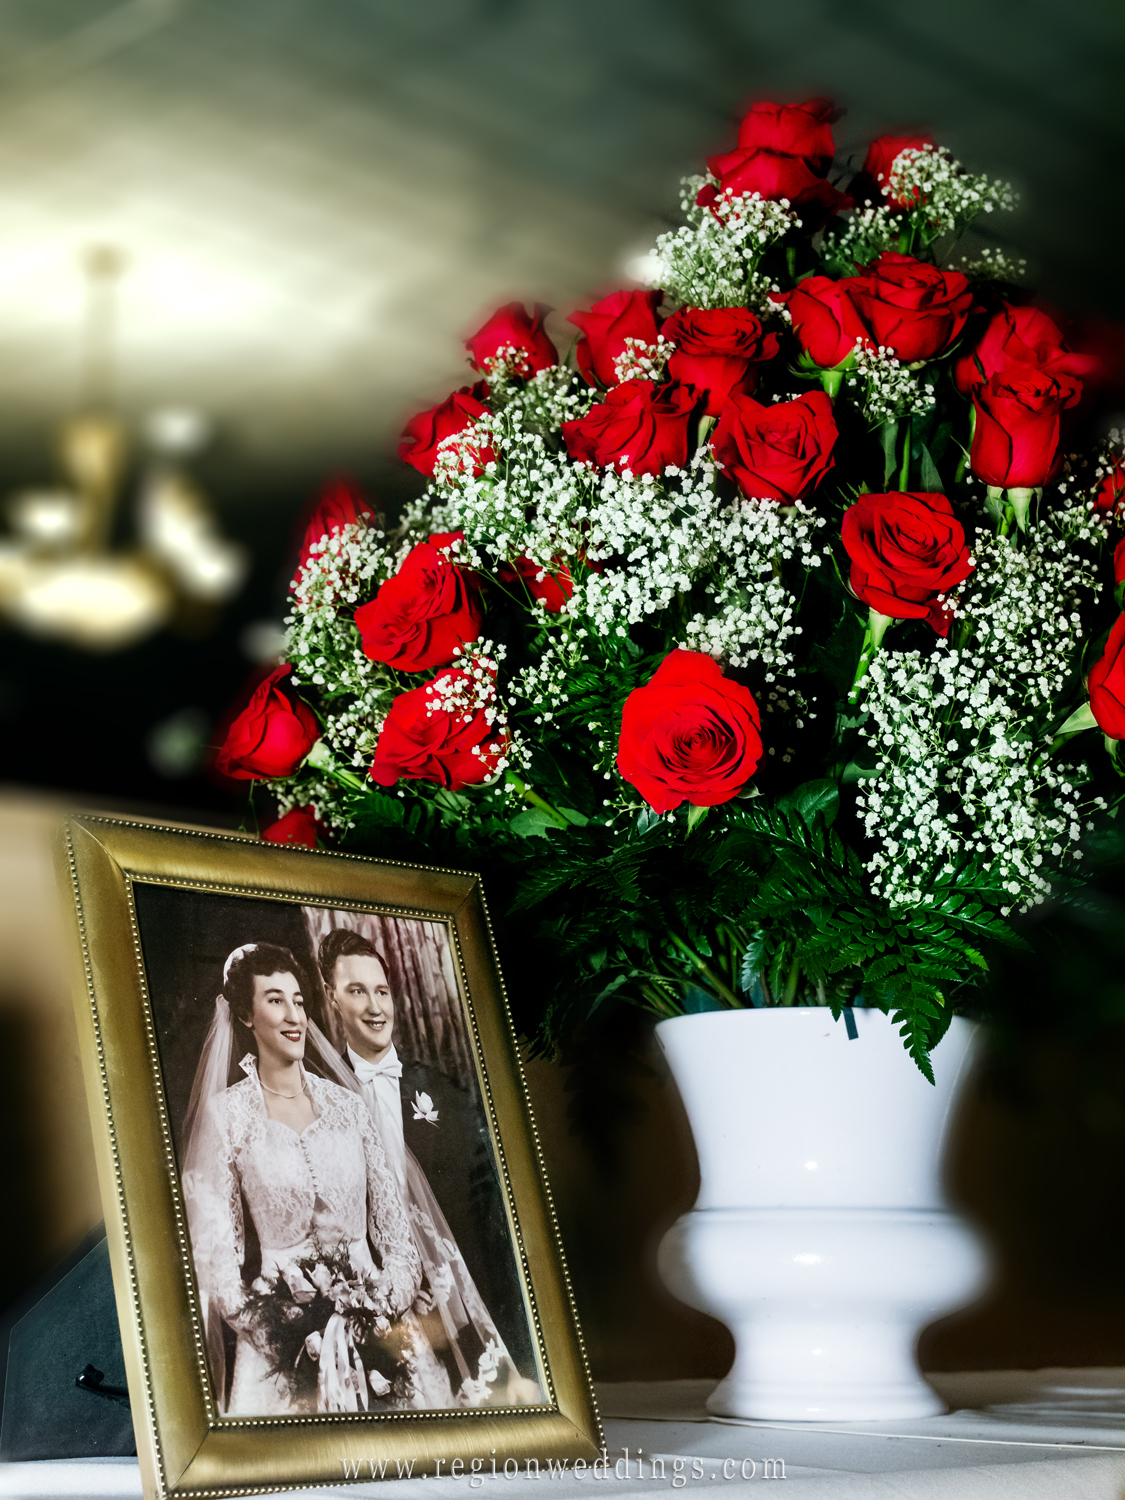 A vintage wedding photo sits next to 60 red roses at an Anniversary Party at Andorra Banquet Hall.